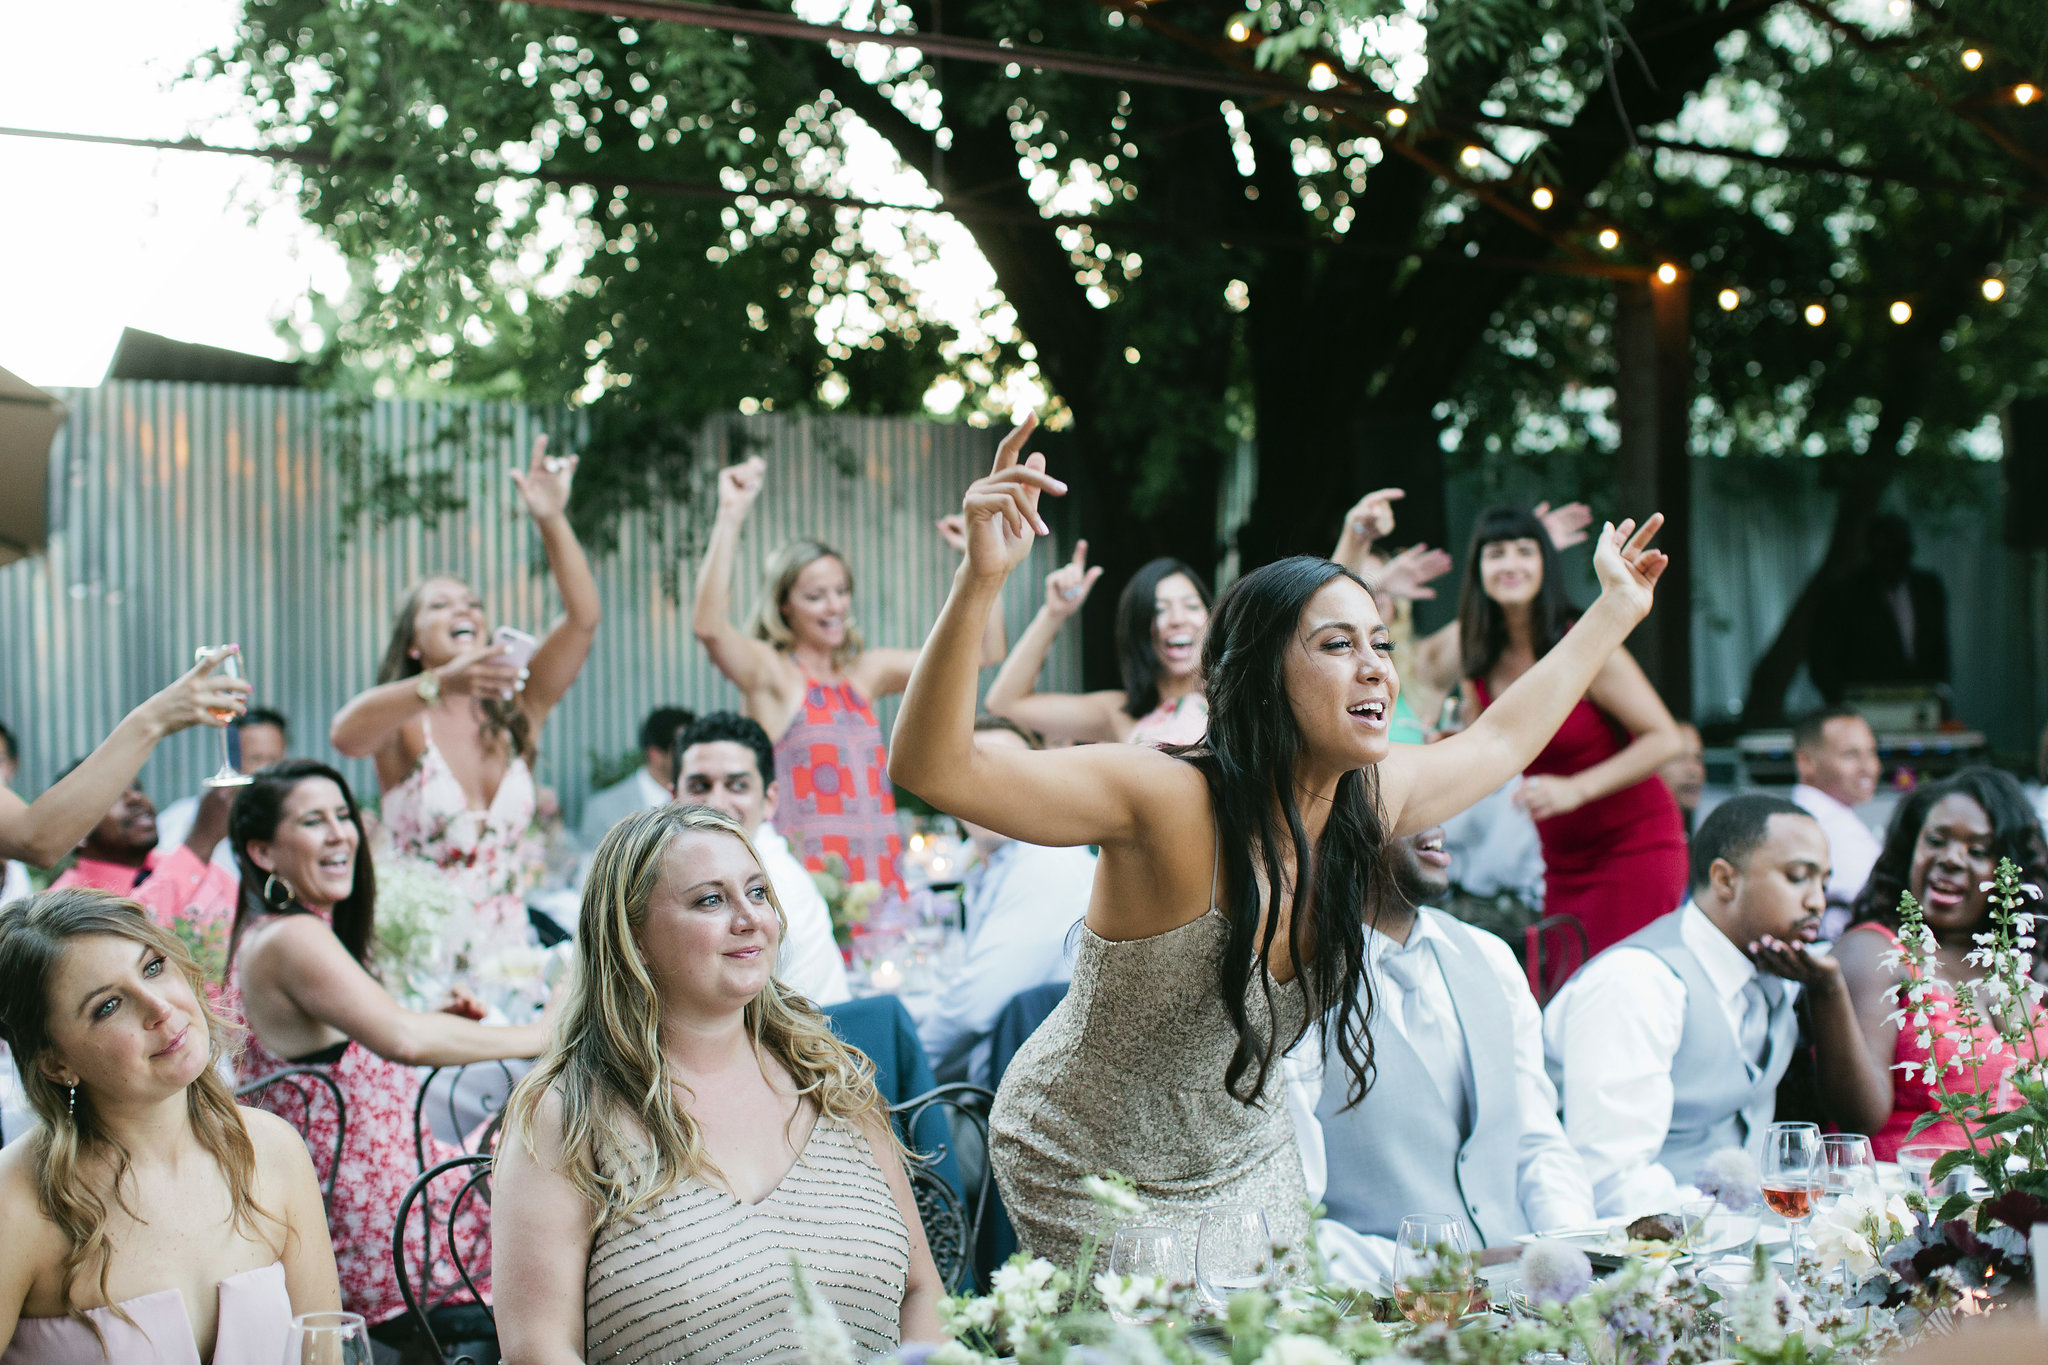 Sami and Rodger threw an amazing wedding at Barndiva in Healdsburg that had their guests dancing and singing in their seats throughout dinner.